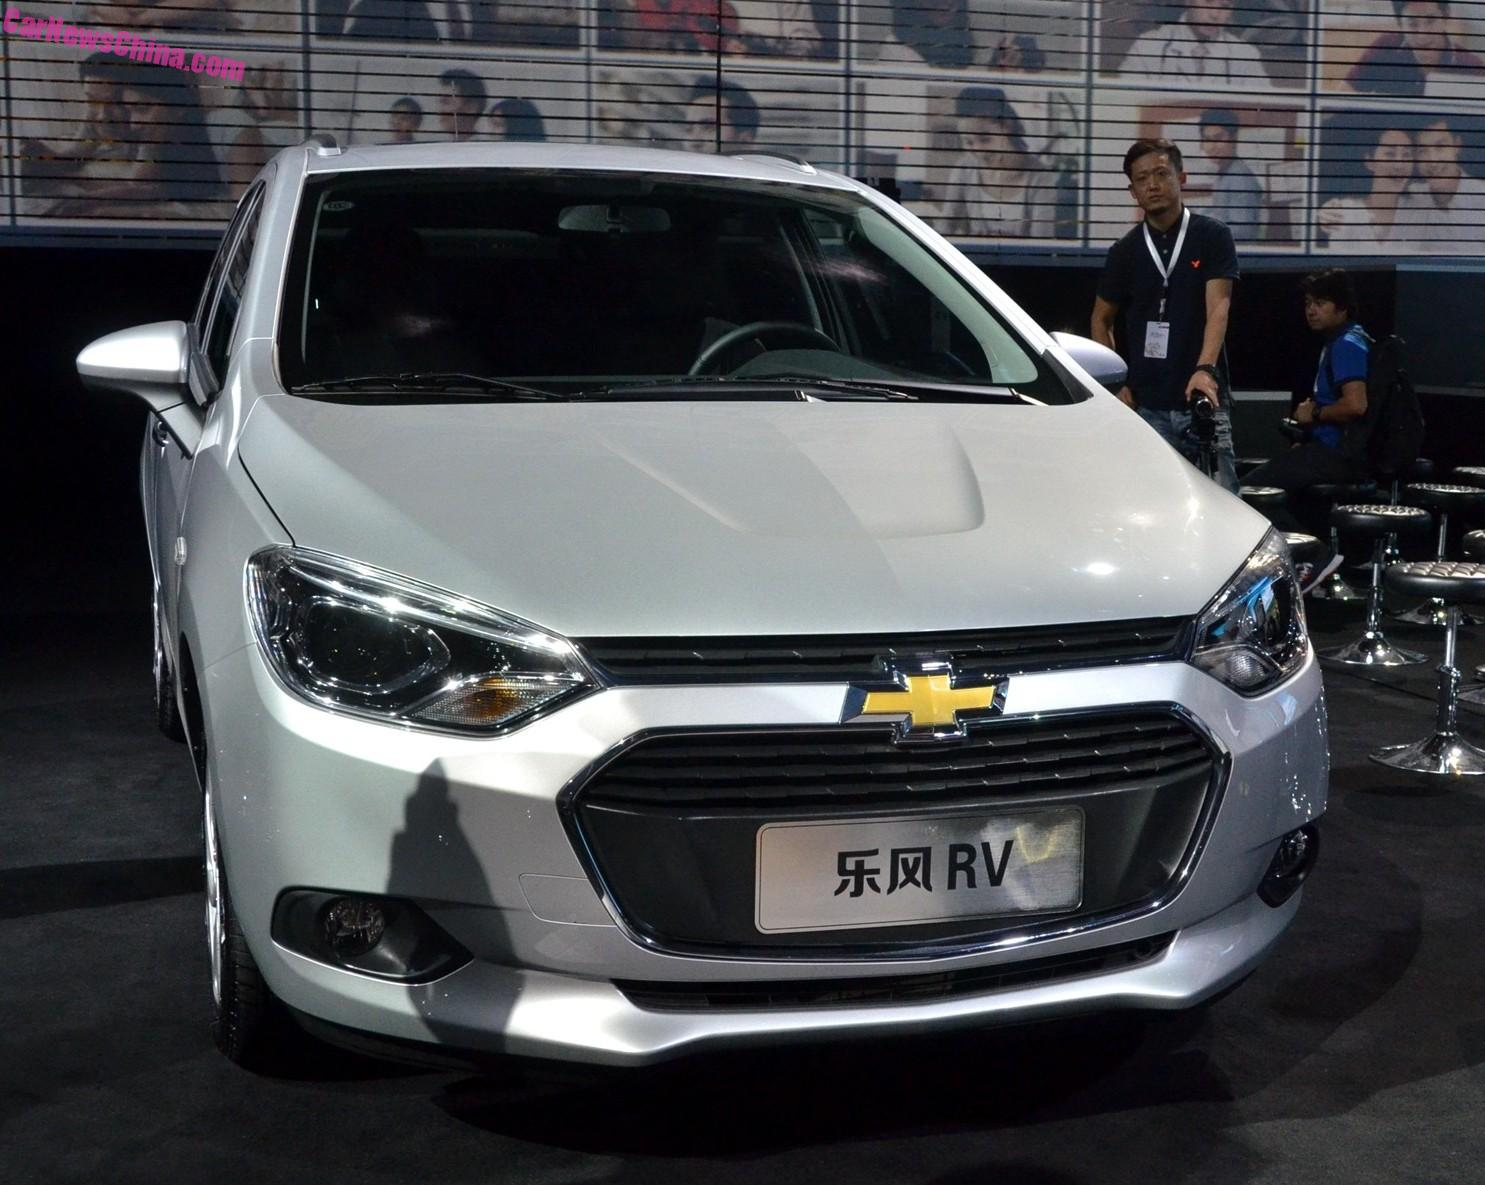 Lova Chevrolet Lova Rv Debuts On The Guangzhou Auto Show In